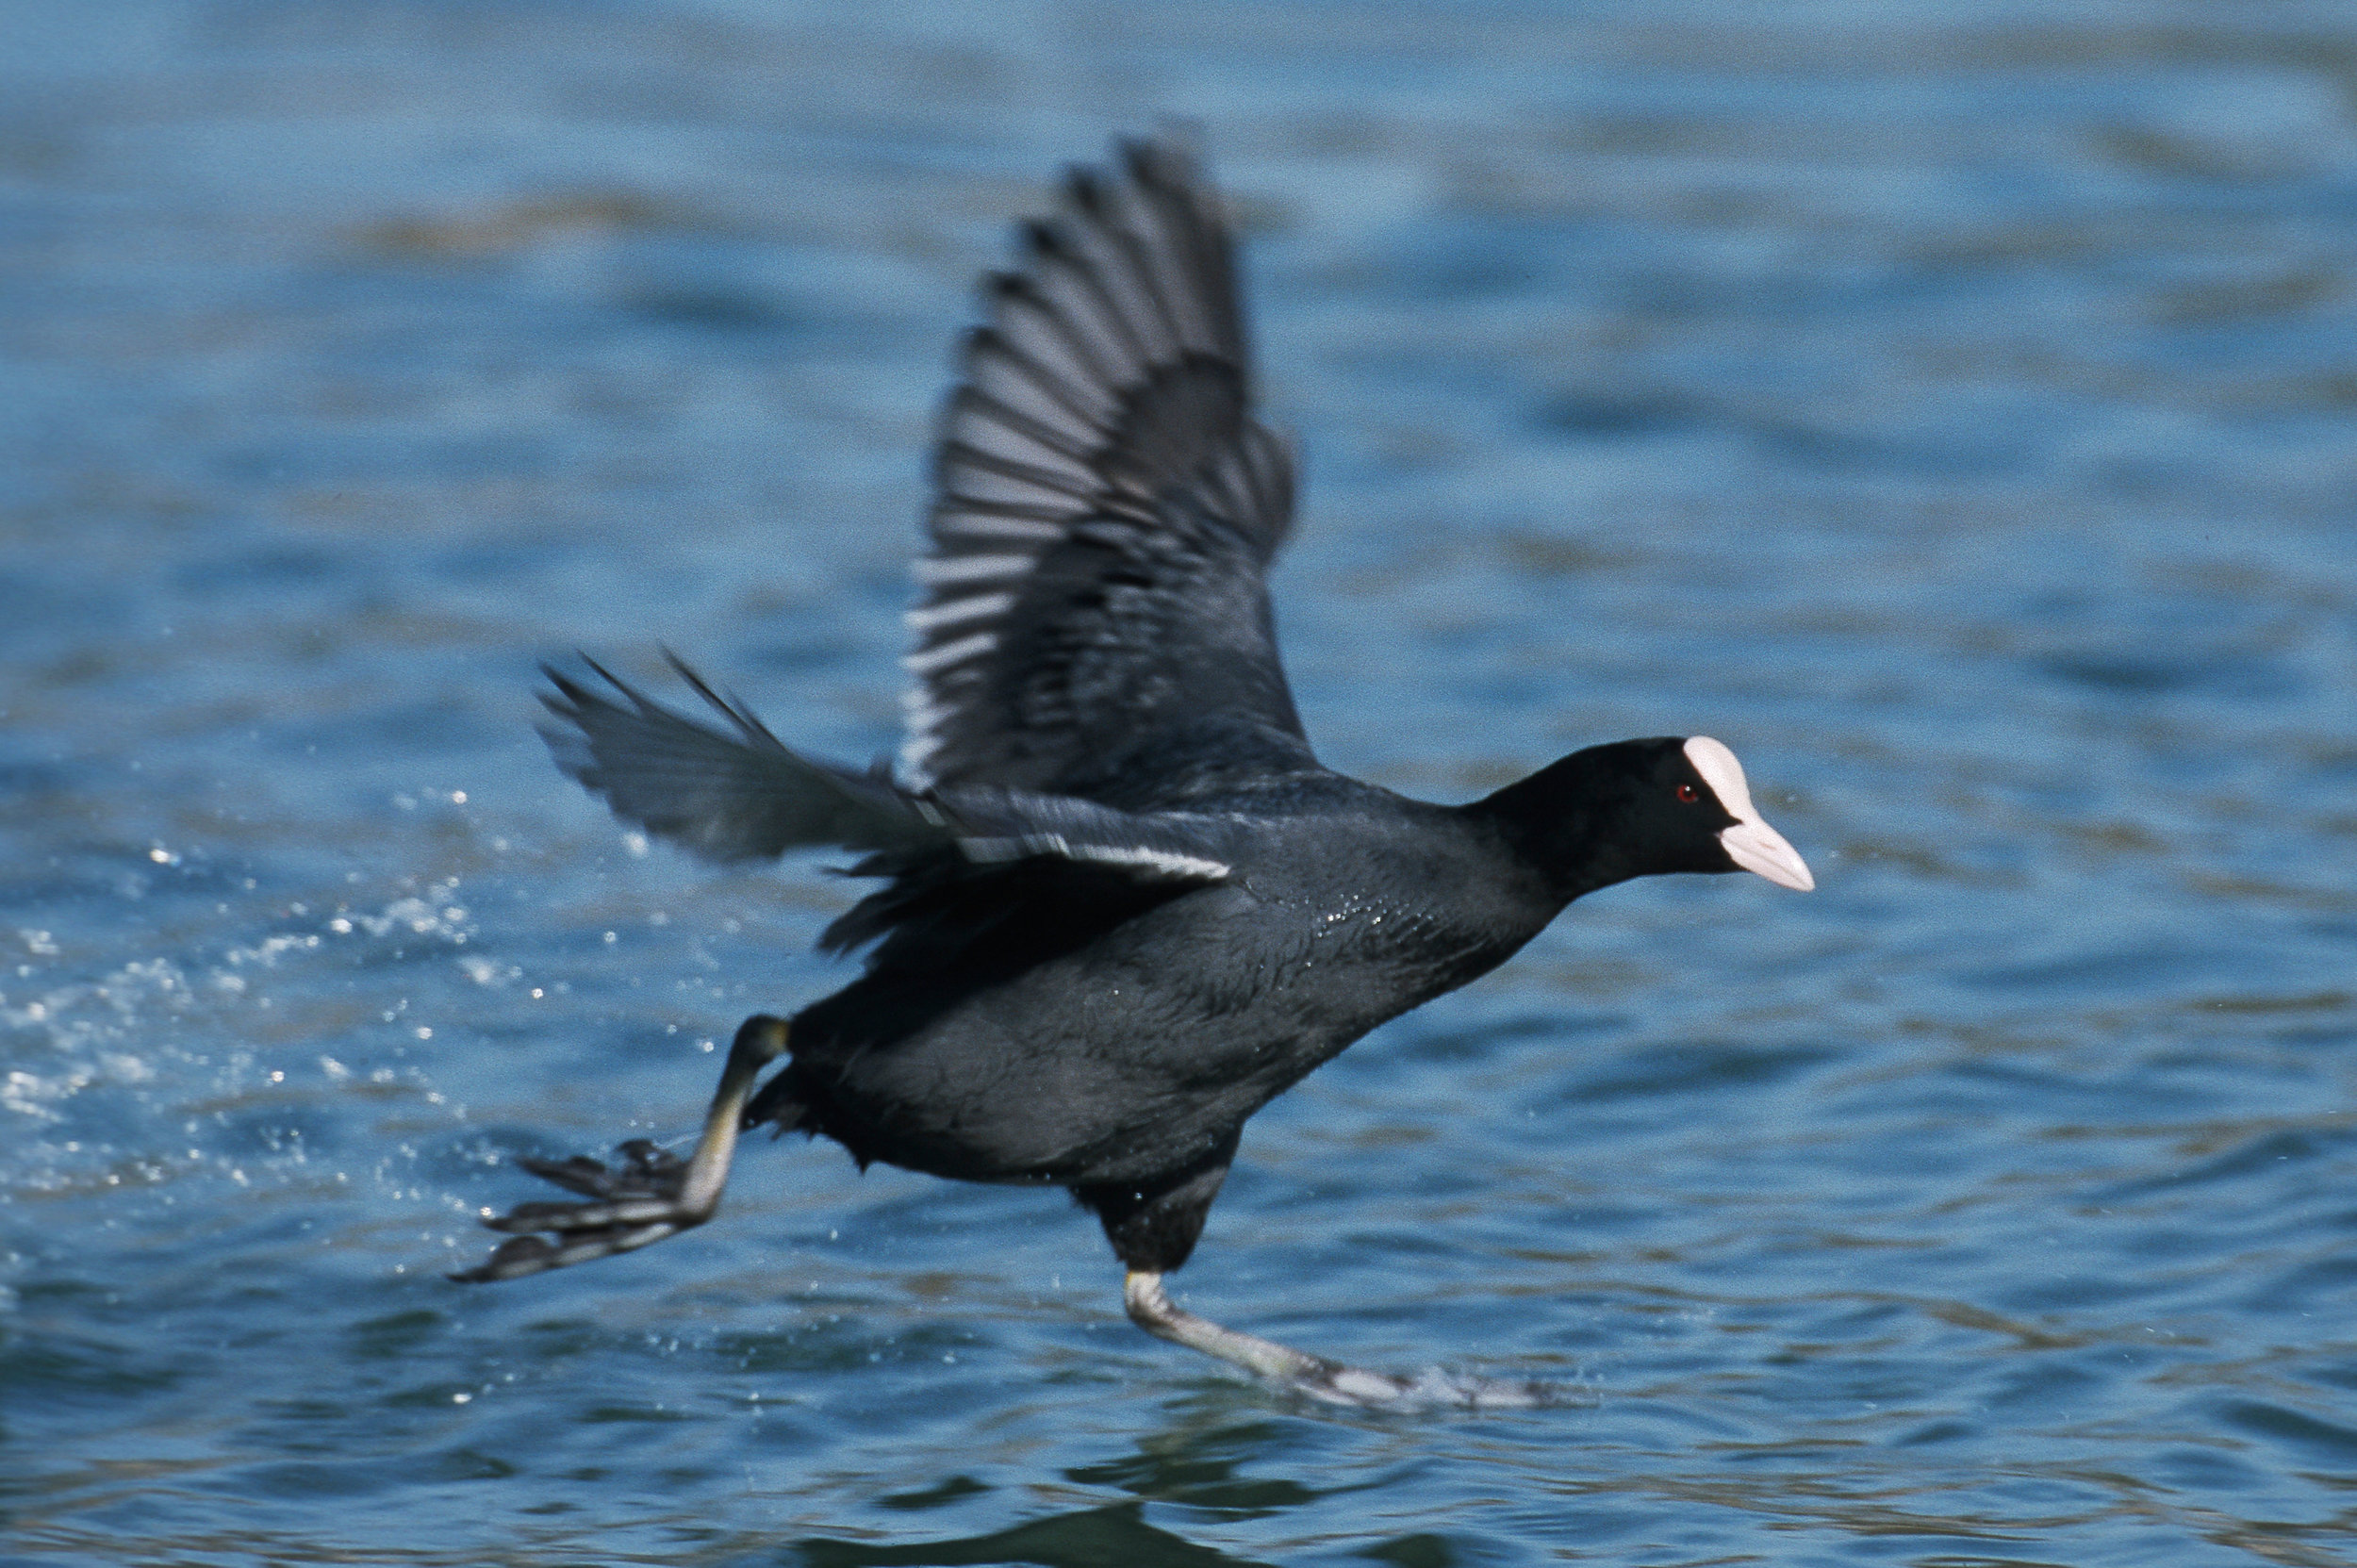 Coot taking off from water